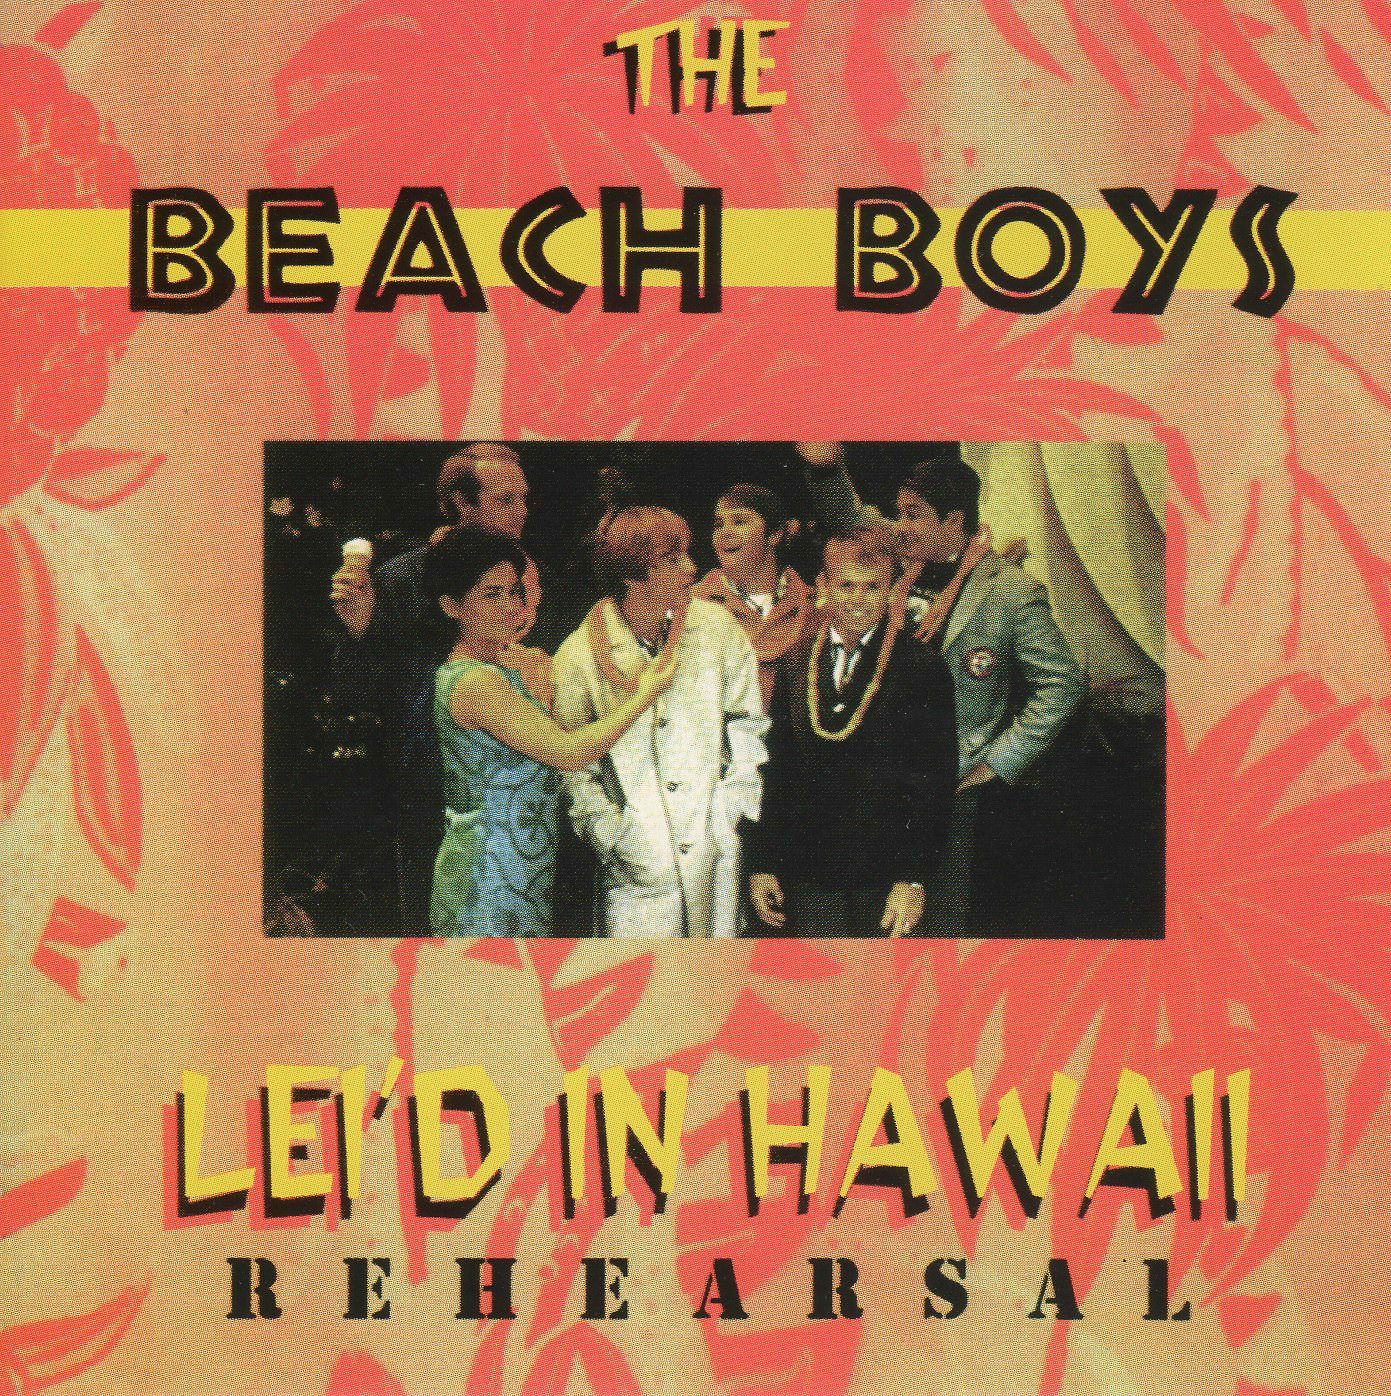 Lei'd In Hawaii Rehearsal cover